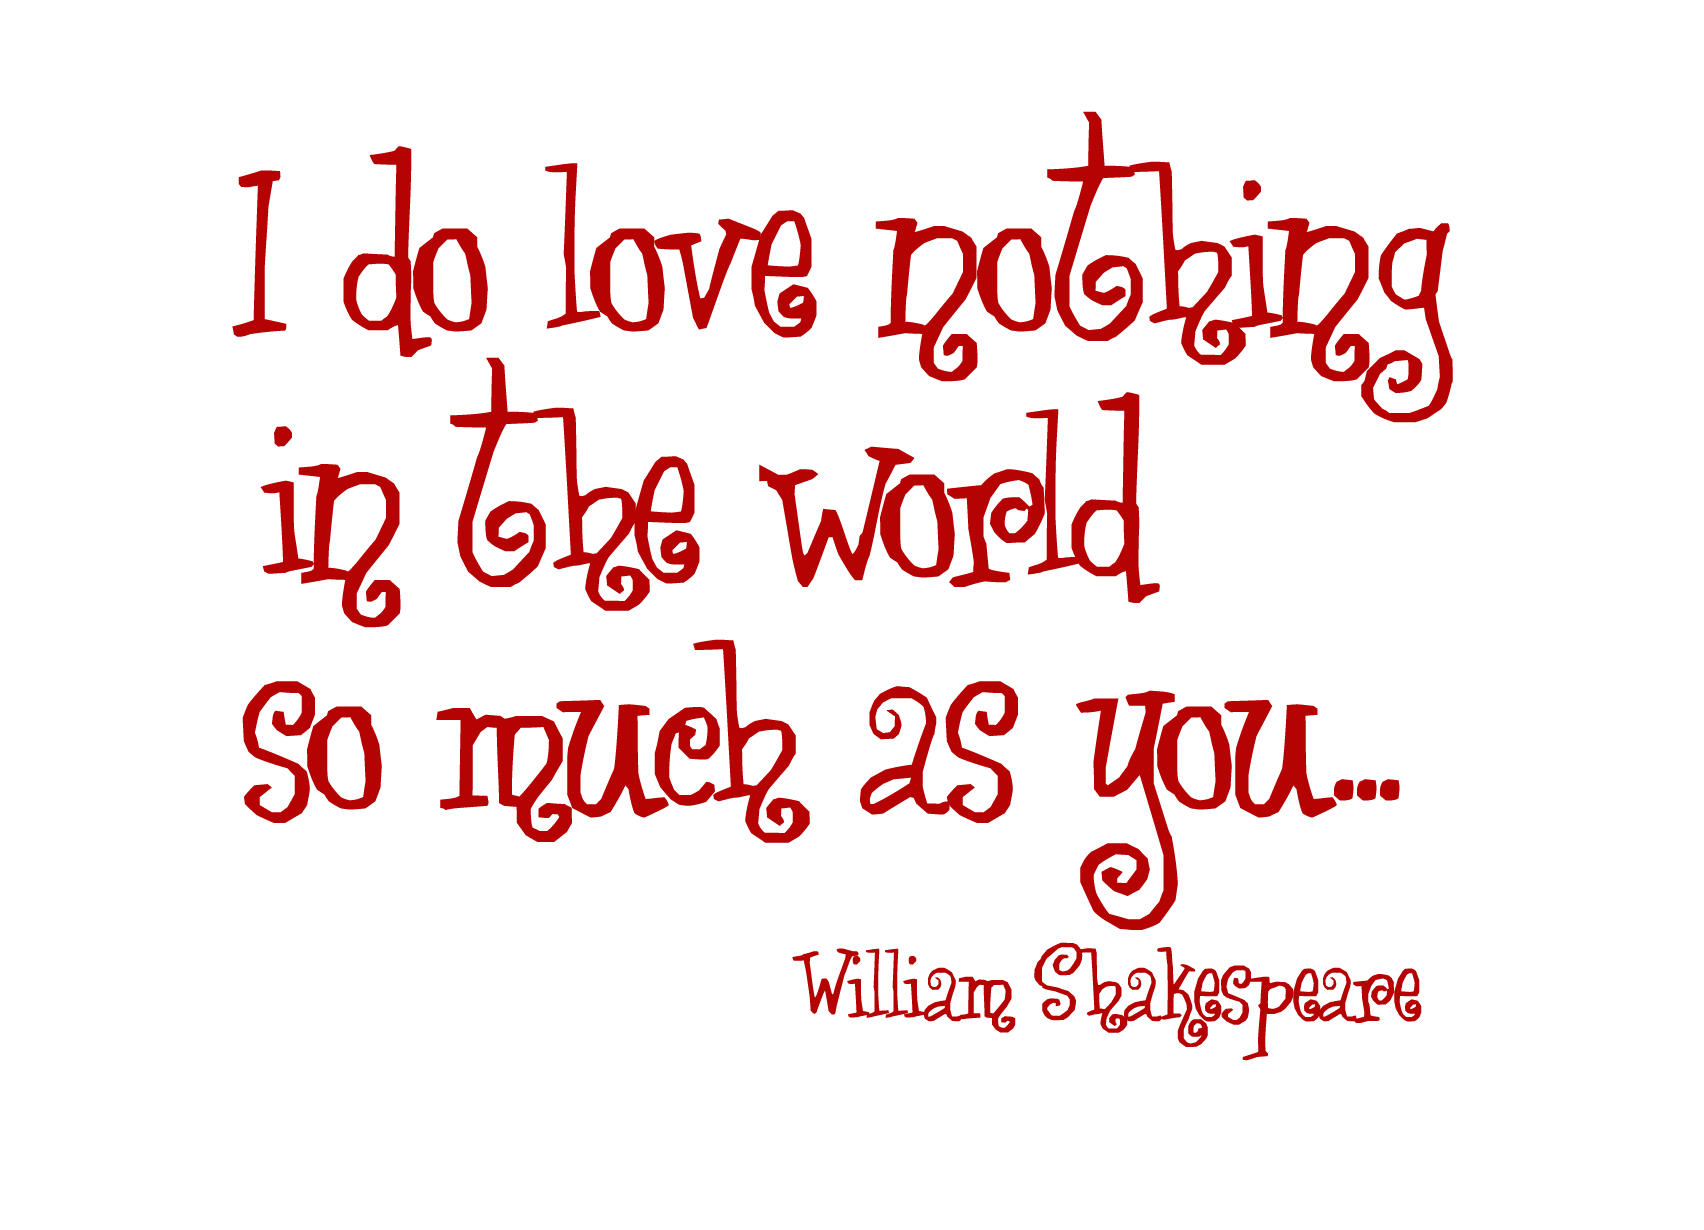 Shakespeare Love Quotes Wallpaper : Love Quotes By Shakespeare 20 High Resolution Wallpaper - Hdlovewall.com